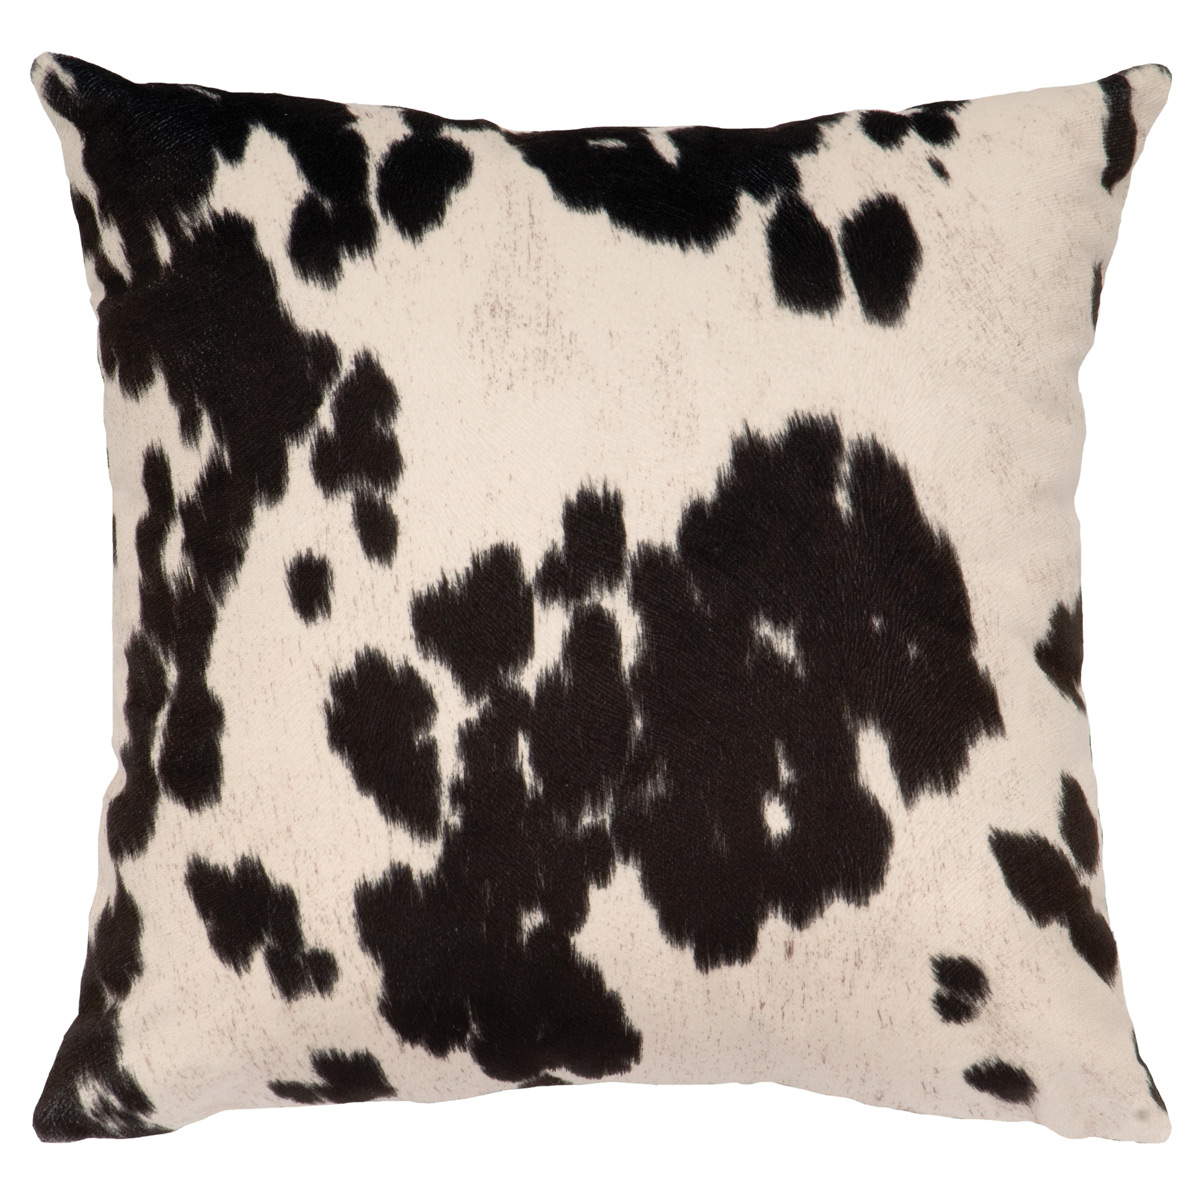 Black Forest Decor Udder domino square pillow